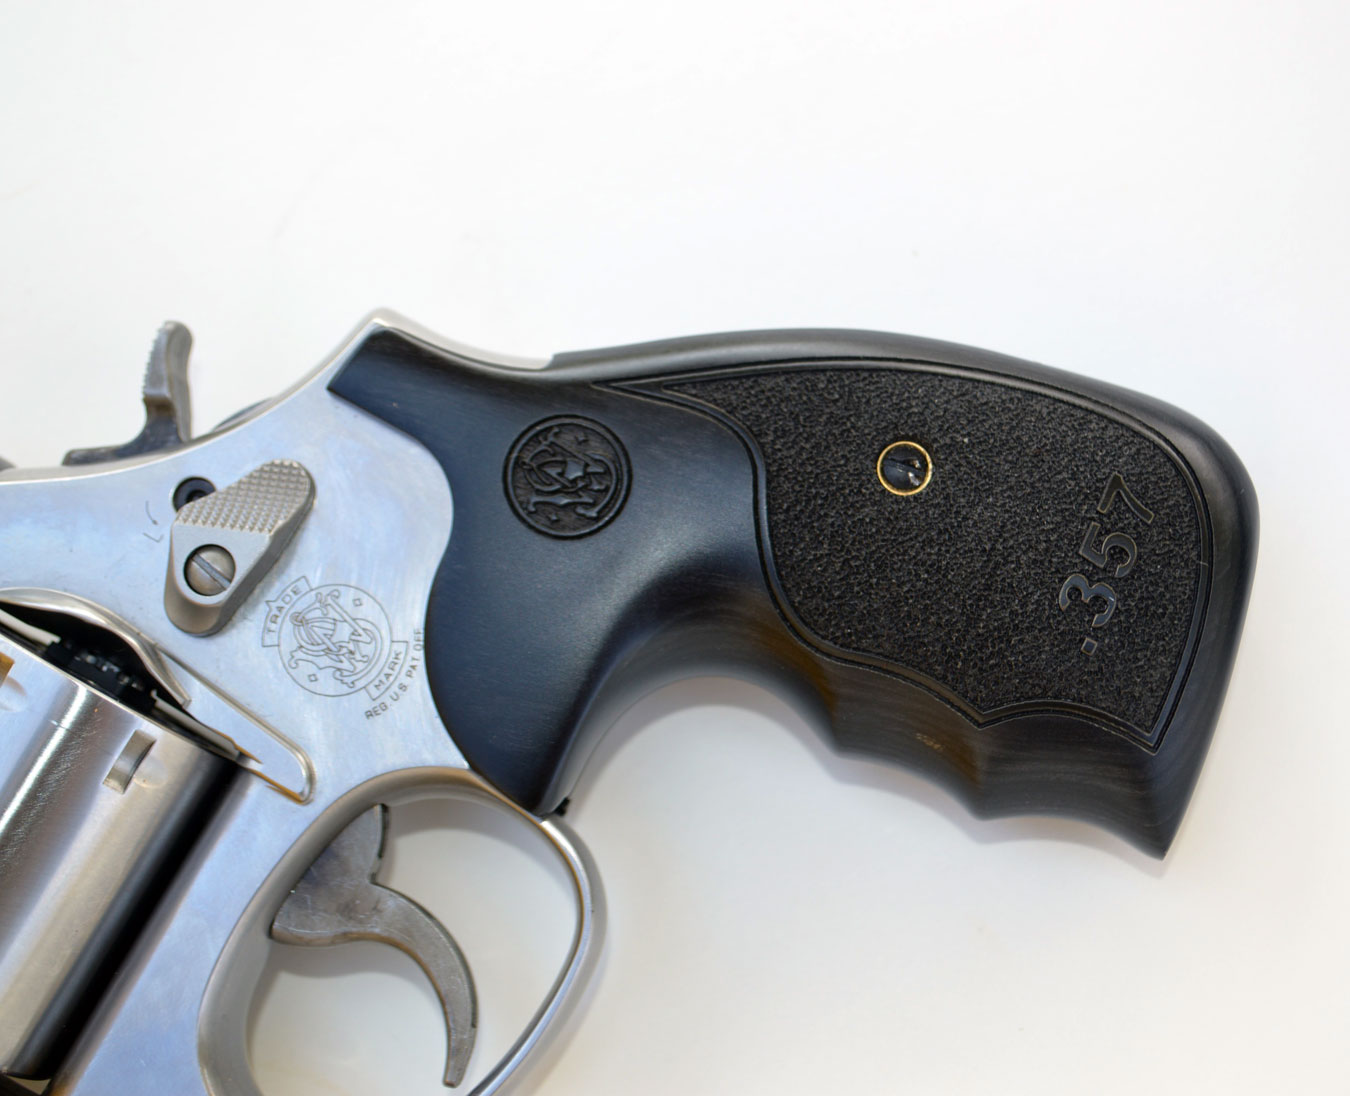 pebble grips on the smith and wesson L frame 686 plus revolver